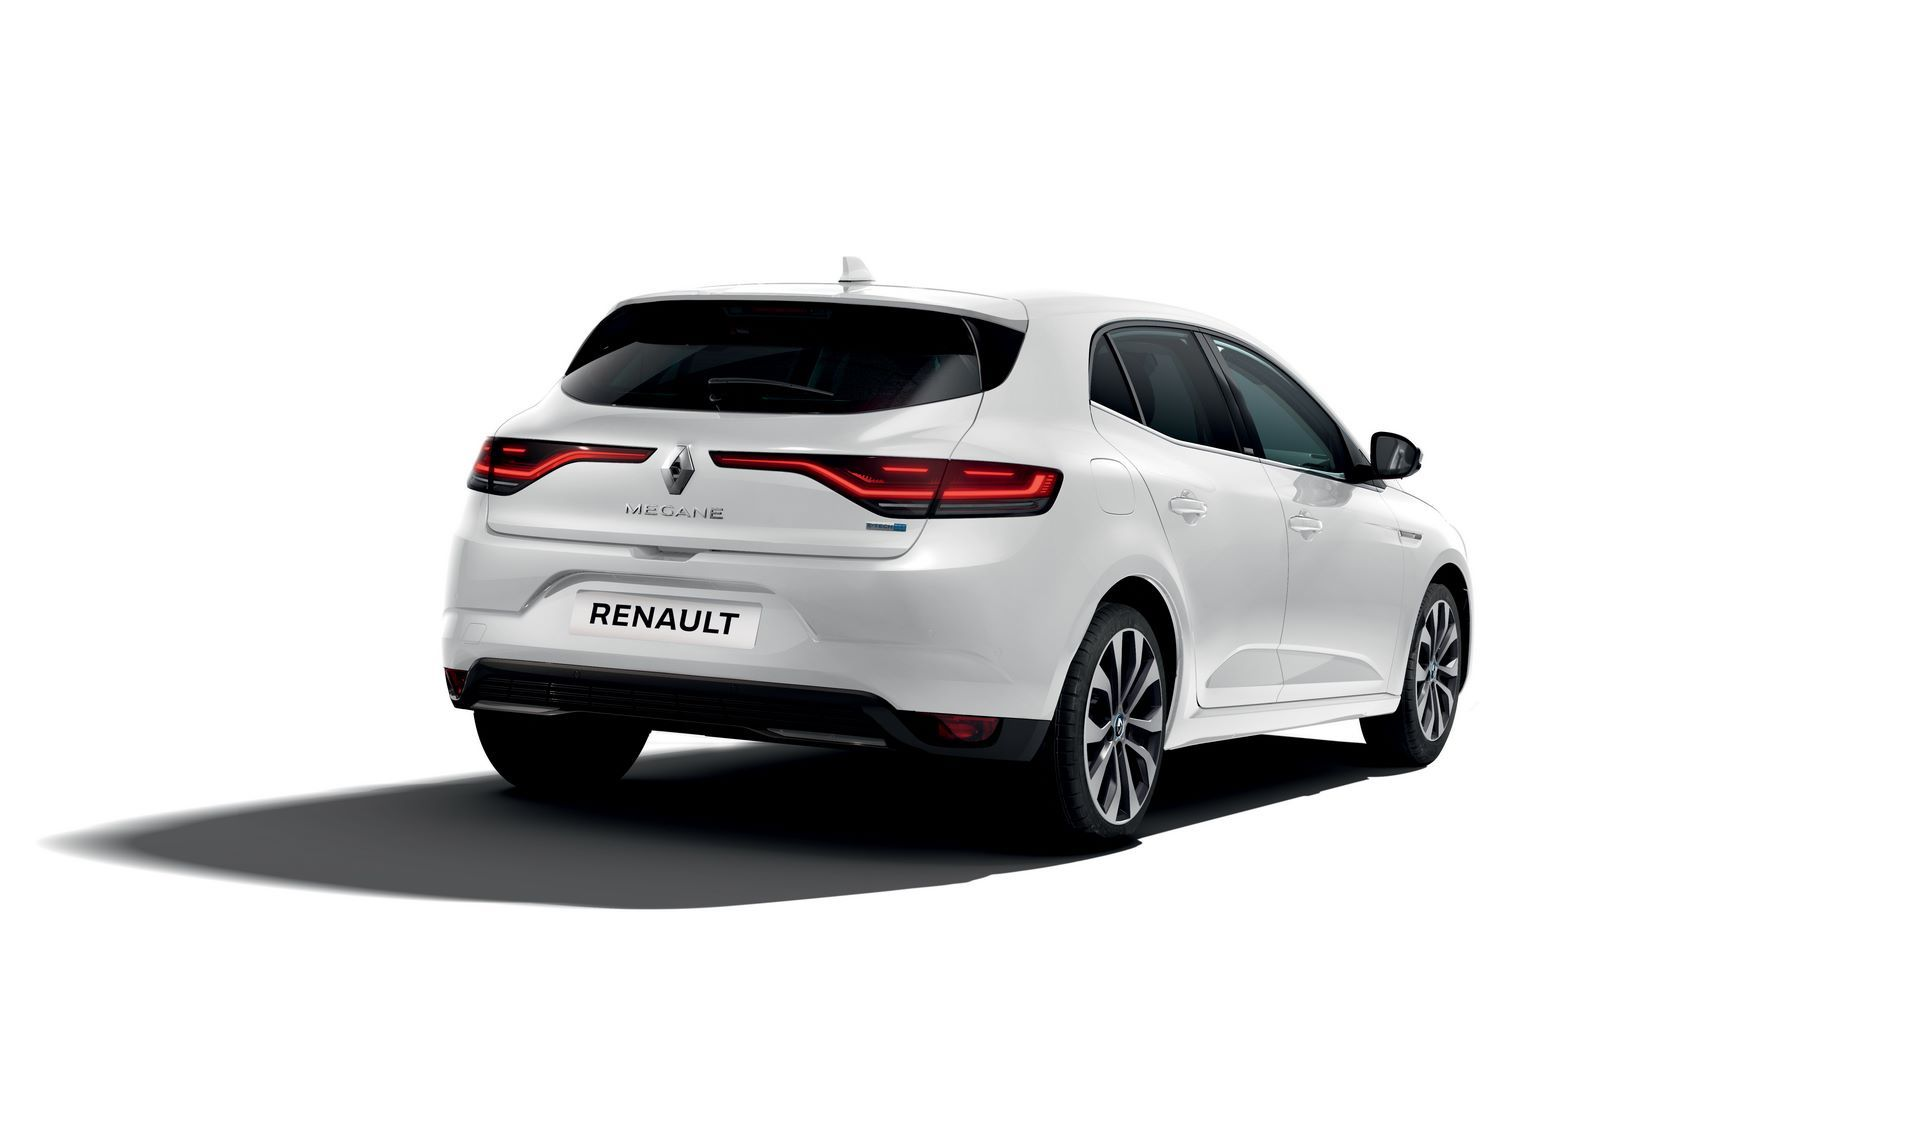 2020-New-Renault-MEGANE-Berline-E-TECH-Plug-In-Hybrid-1